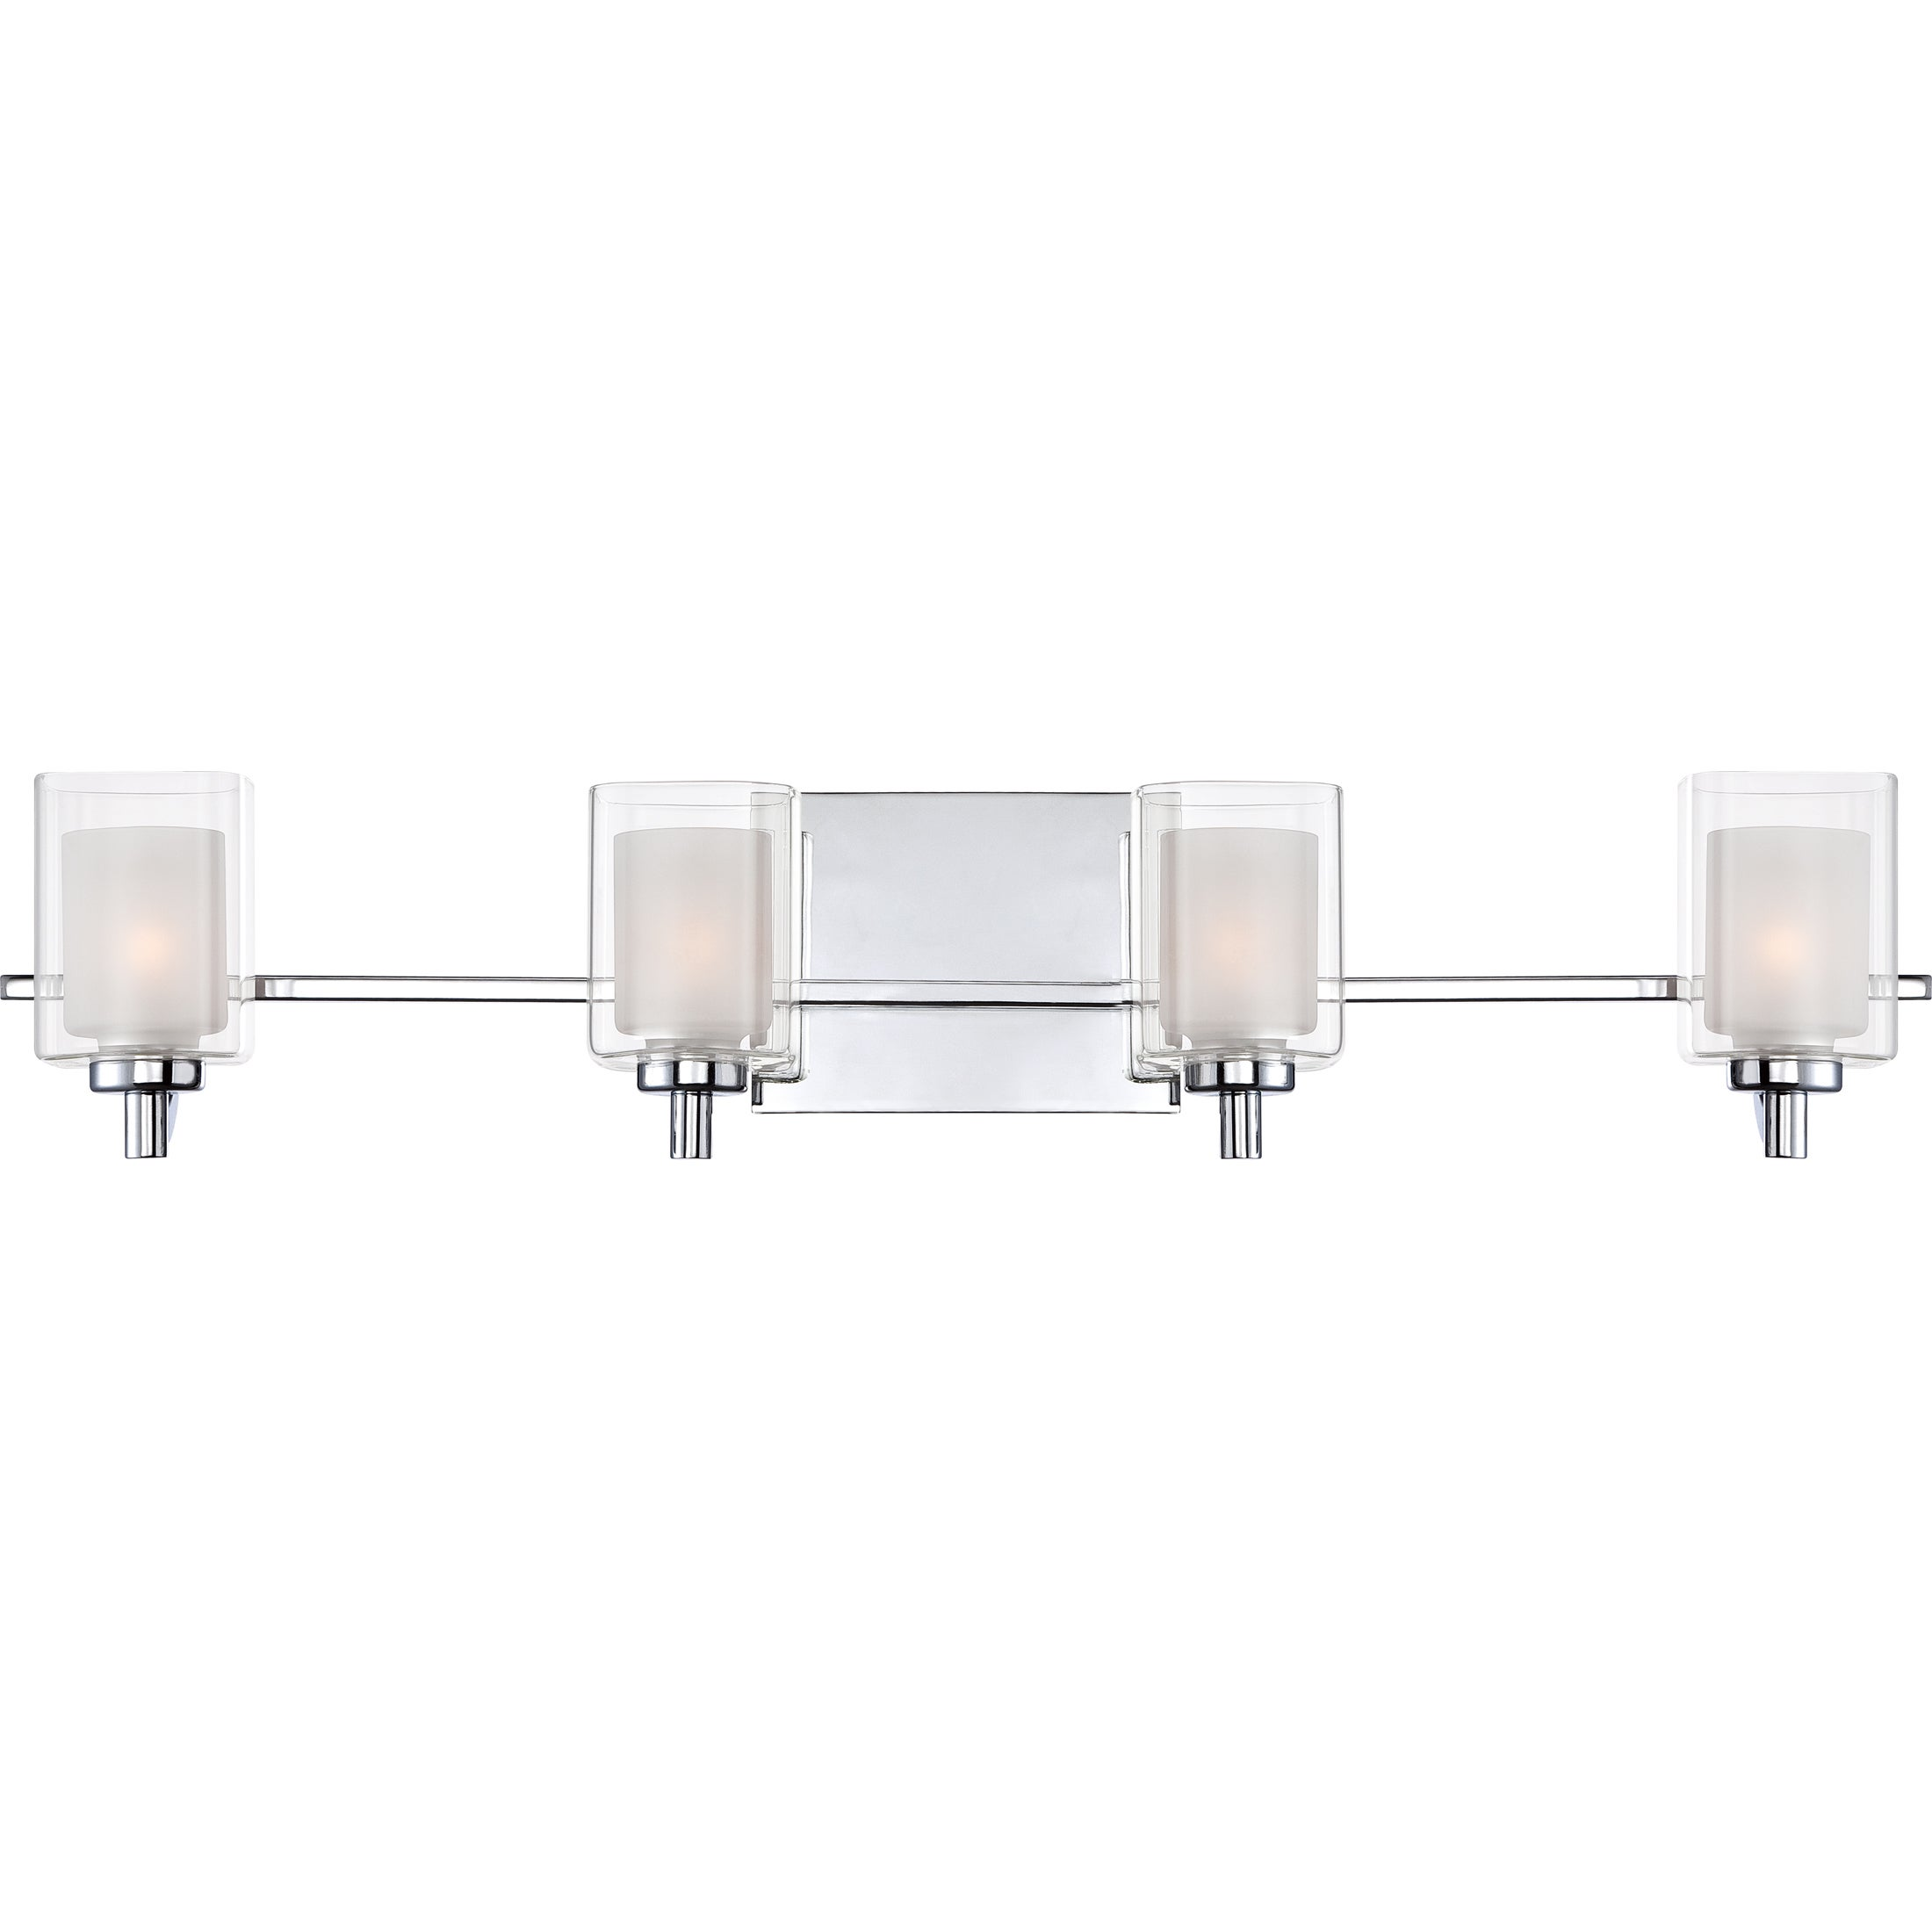 Shop Quoize Kolt 4-light Bath Fixture - Free Shipping On Orders Over ...